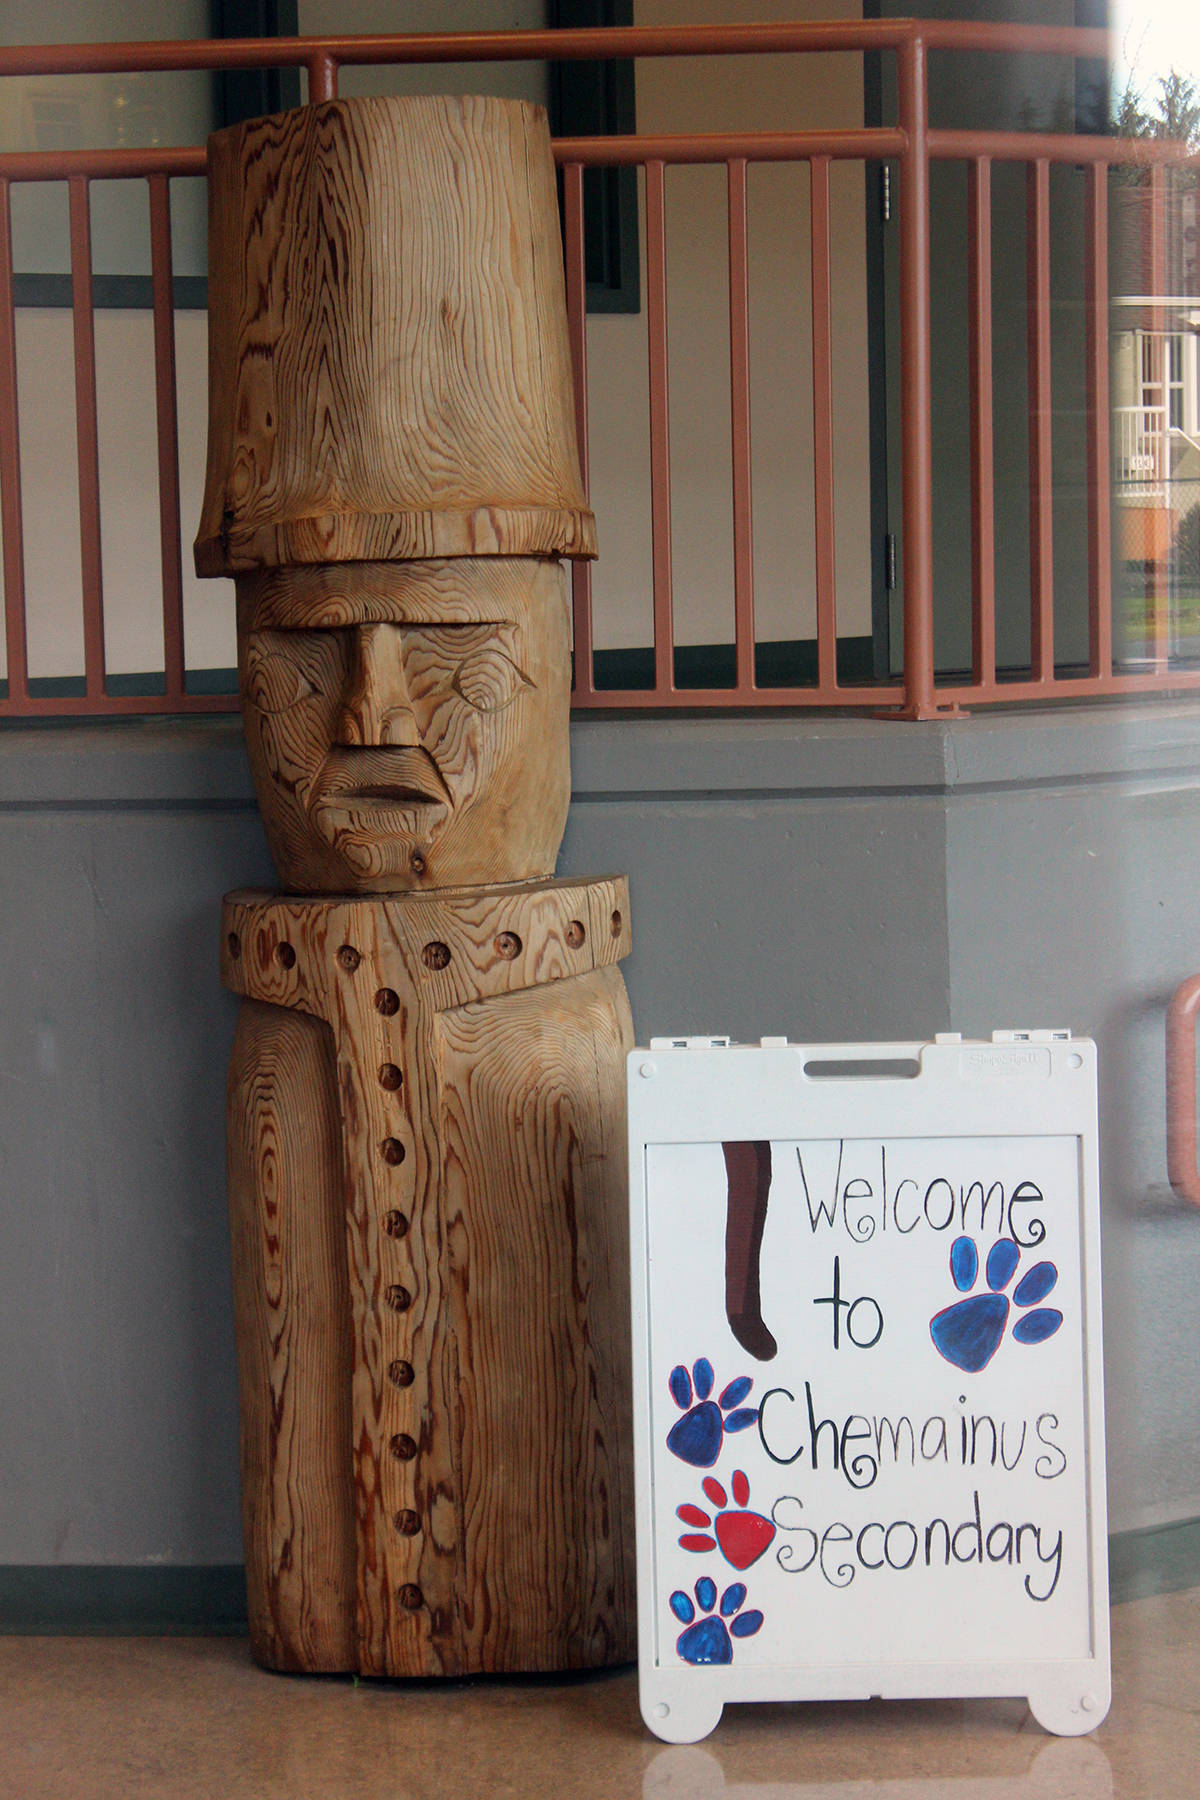 Totem pole inside Chemainus Secondary School at the entrance was carved by Gus Modeste. (Photo by Don Bodger)